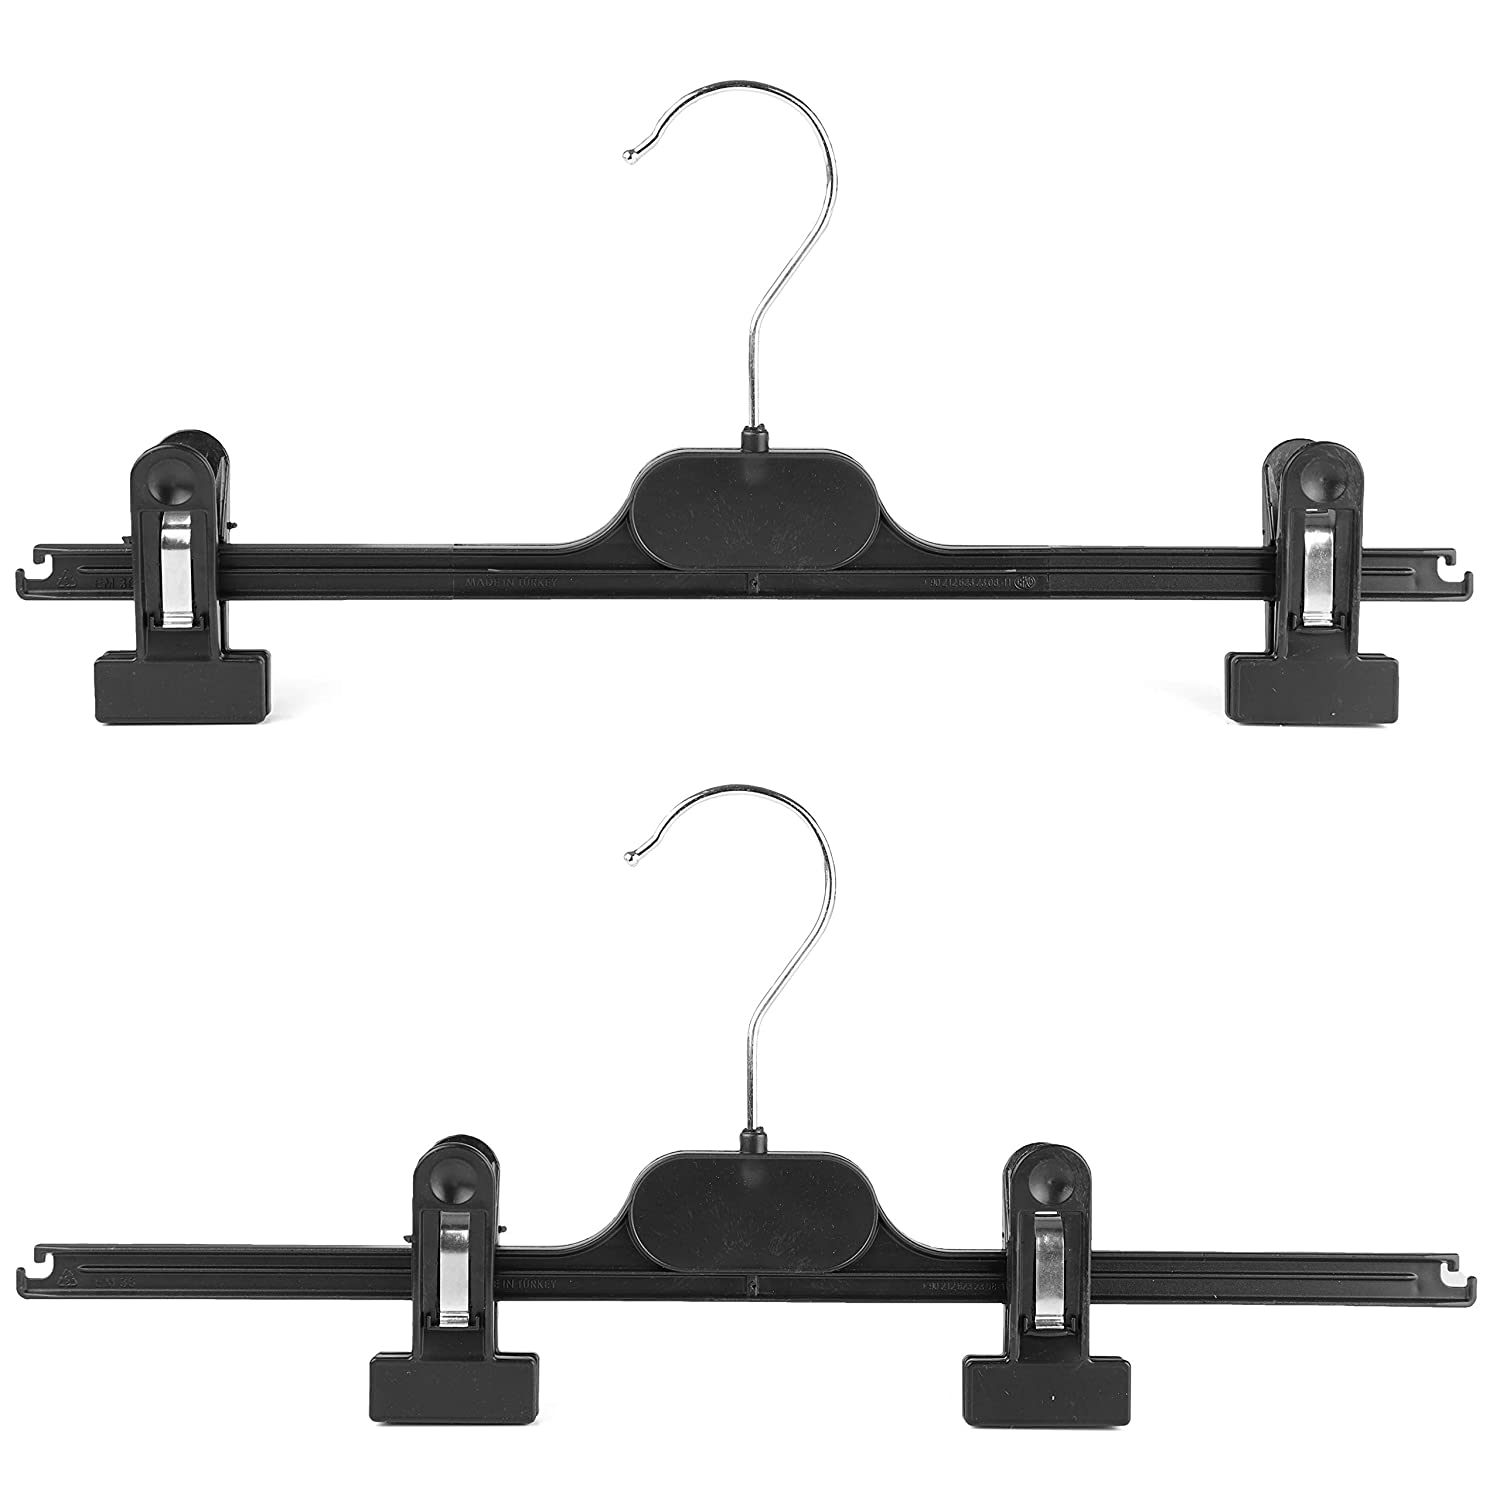 Skirts Coat Clothes Hanger For Trousers The Hanger Store 12 Strong Black Plastic Hangers With Clips